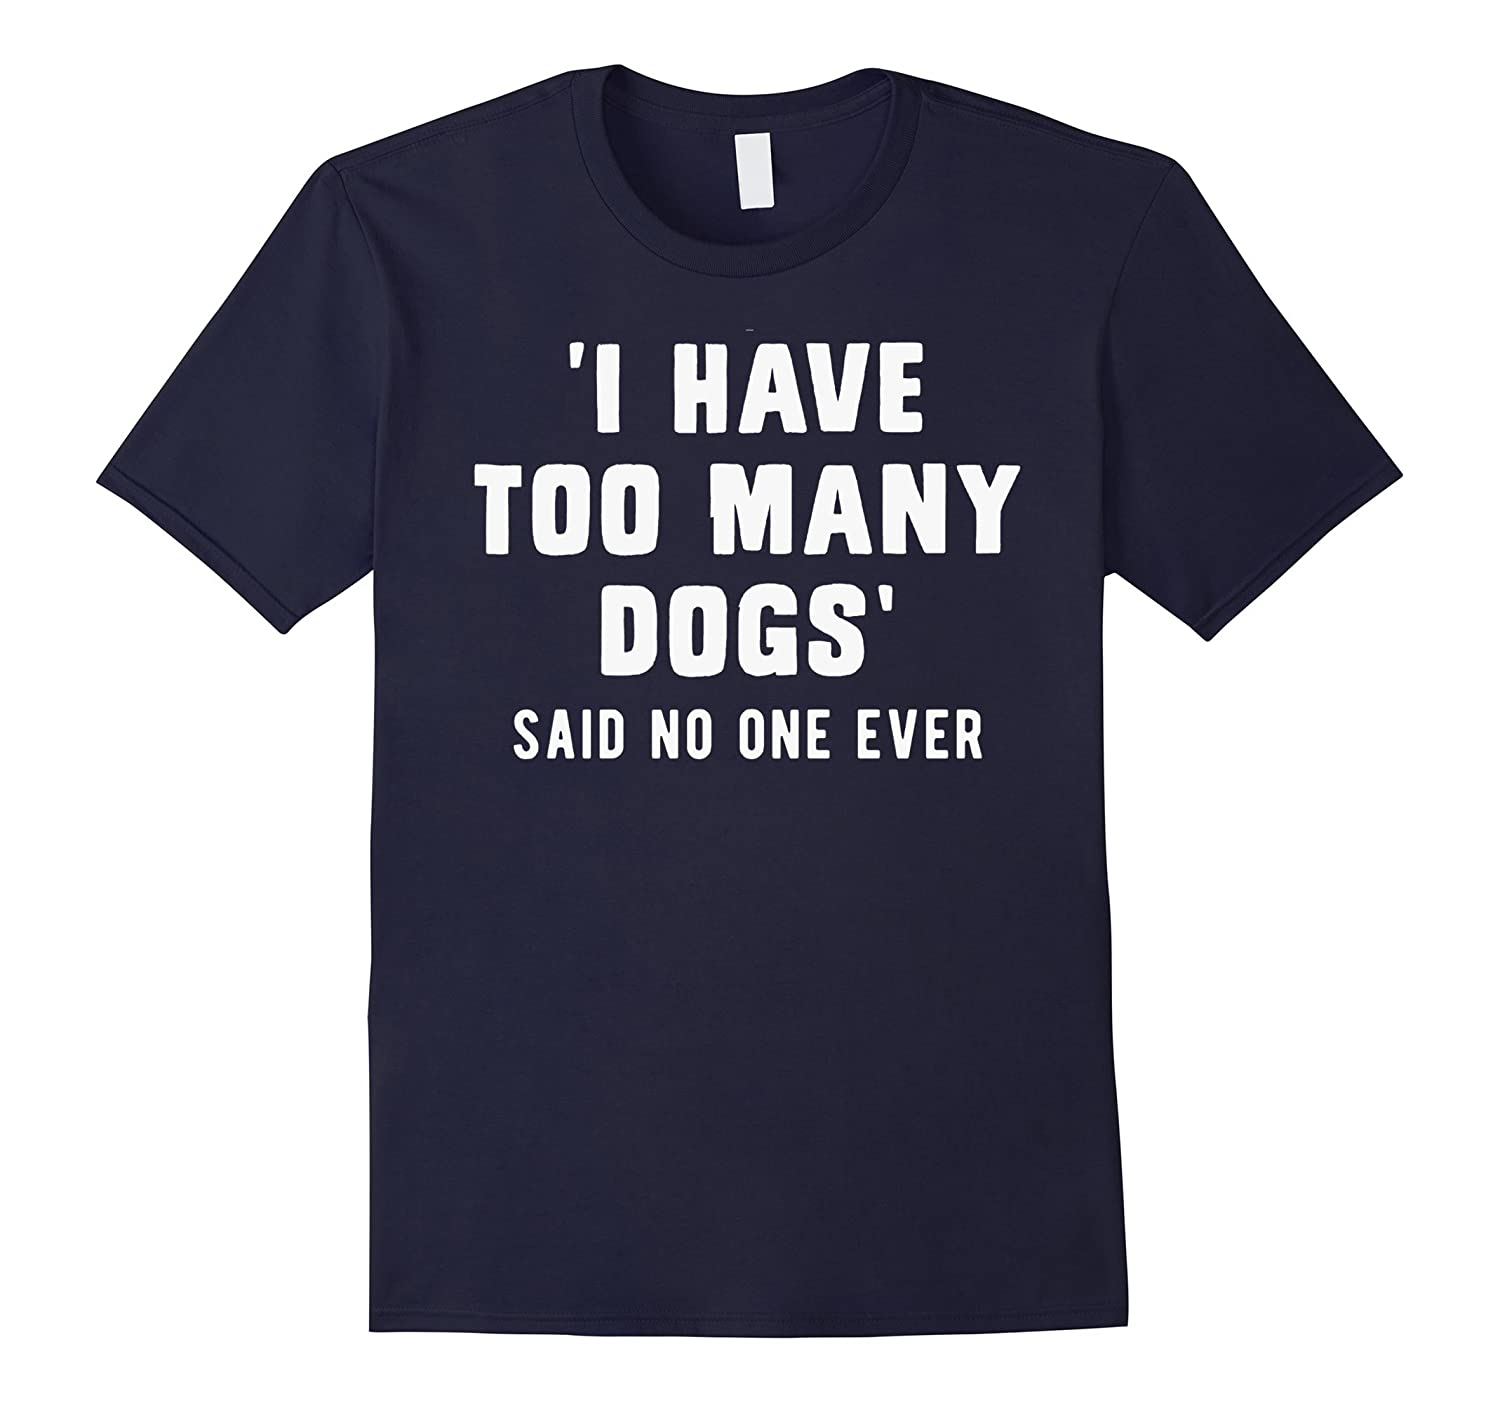 'I have too many dogs', said no one ever, funny t-shirt-azvn